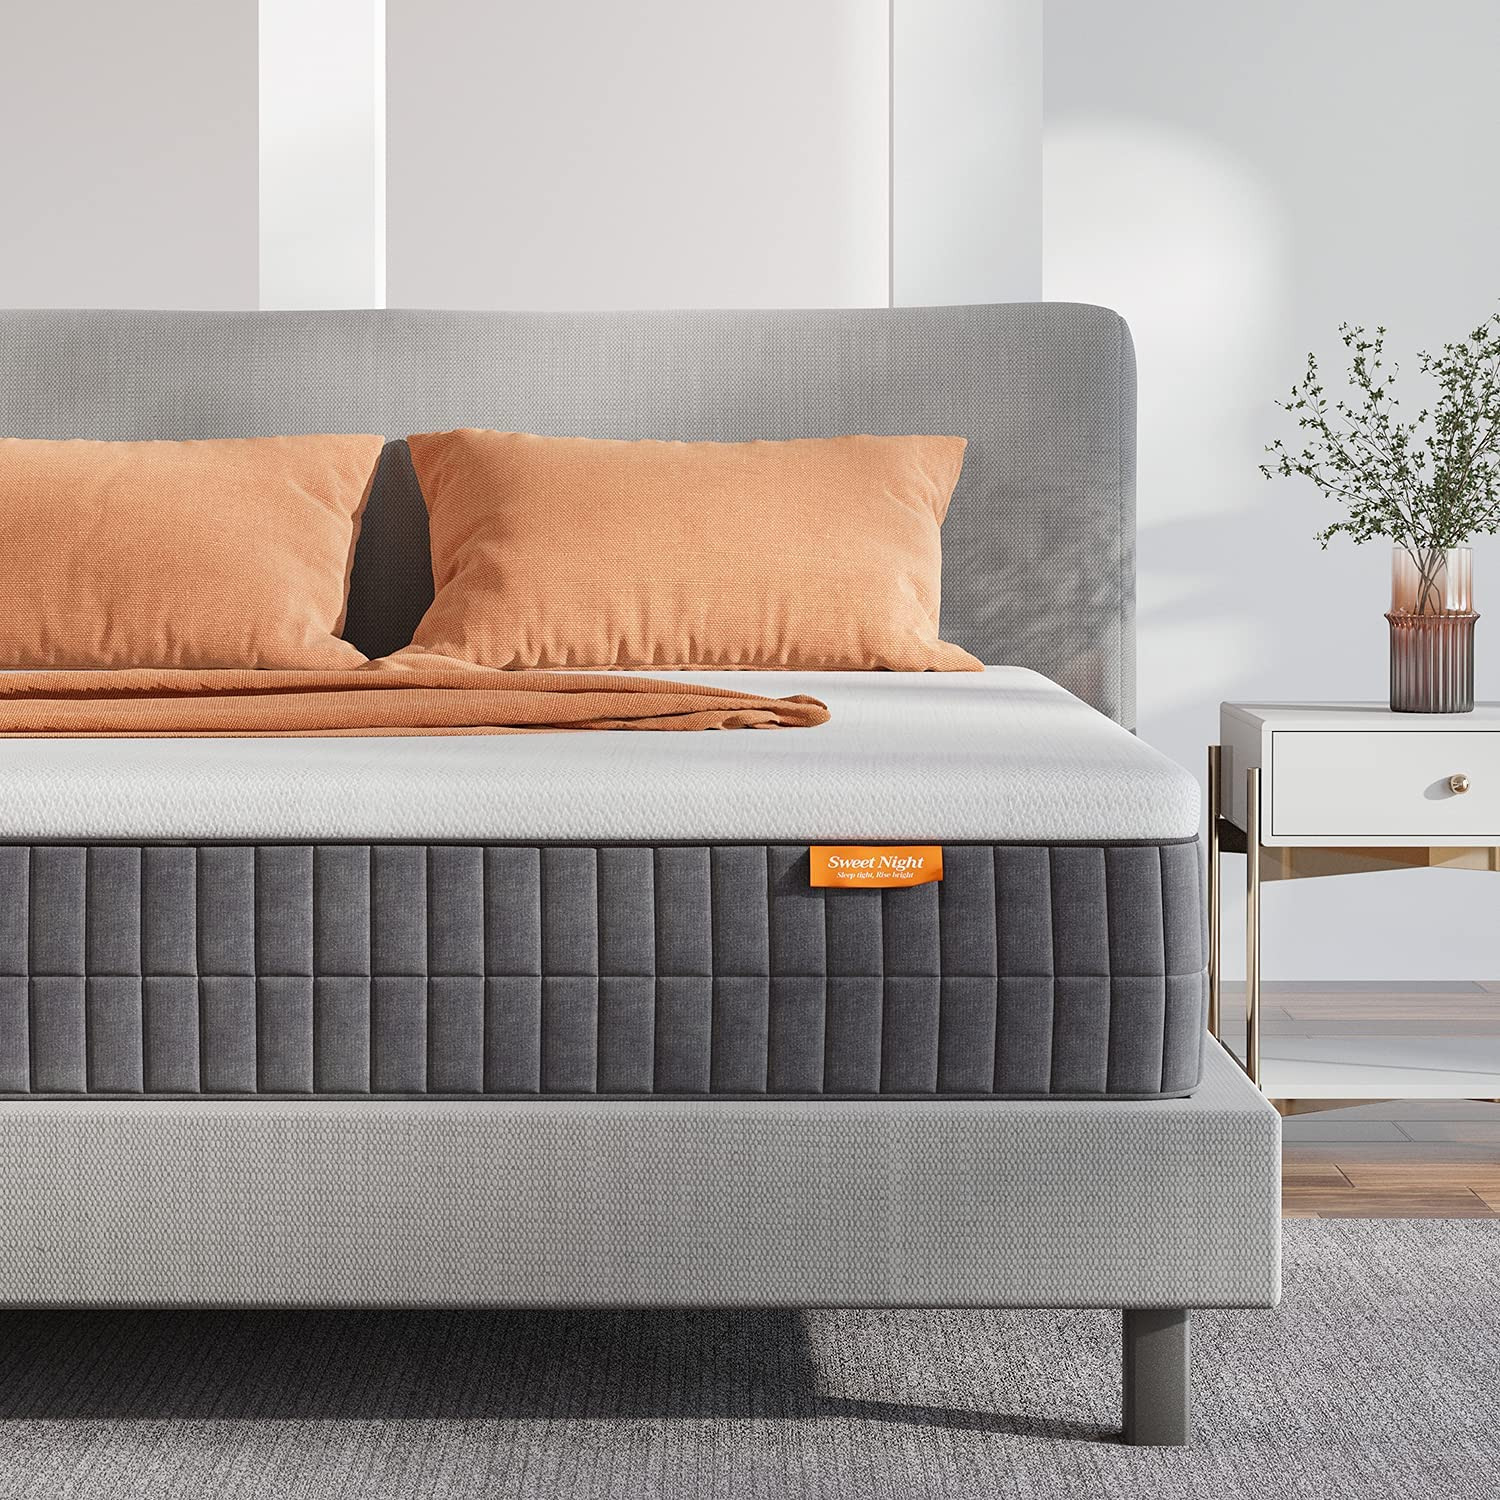 Queen Mattress Sweetnight 12 Inch All stores are sold Size P Box low-pricing in